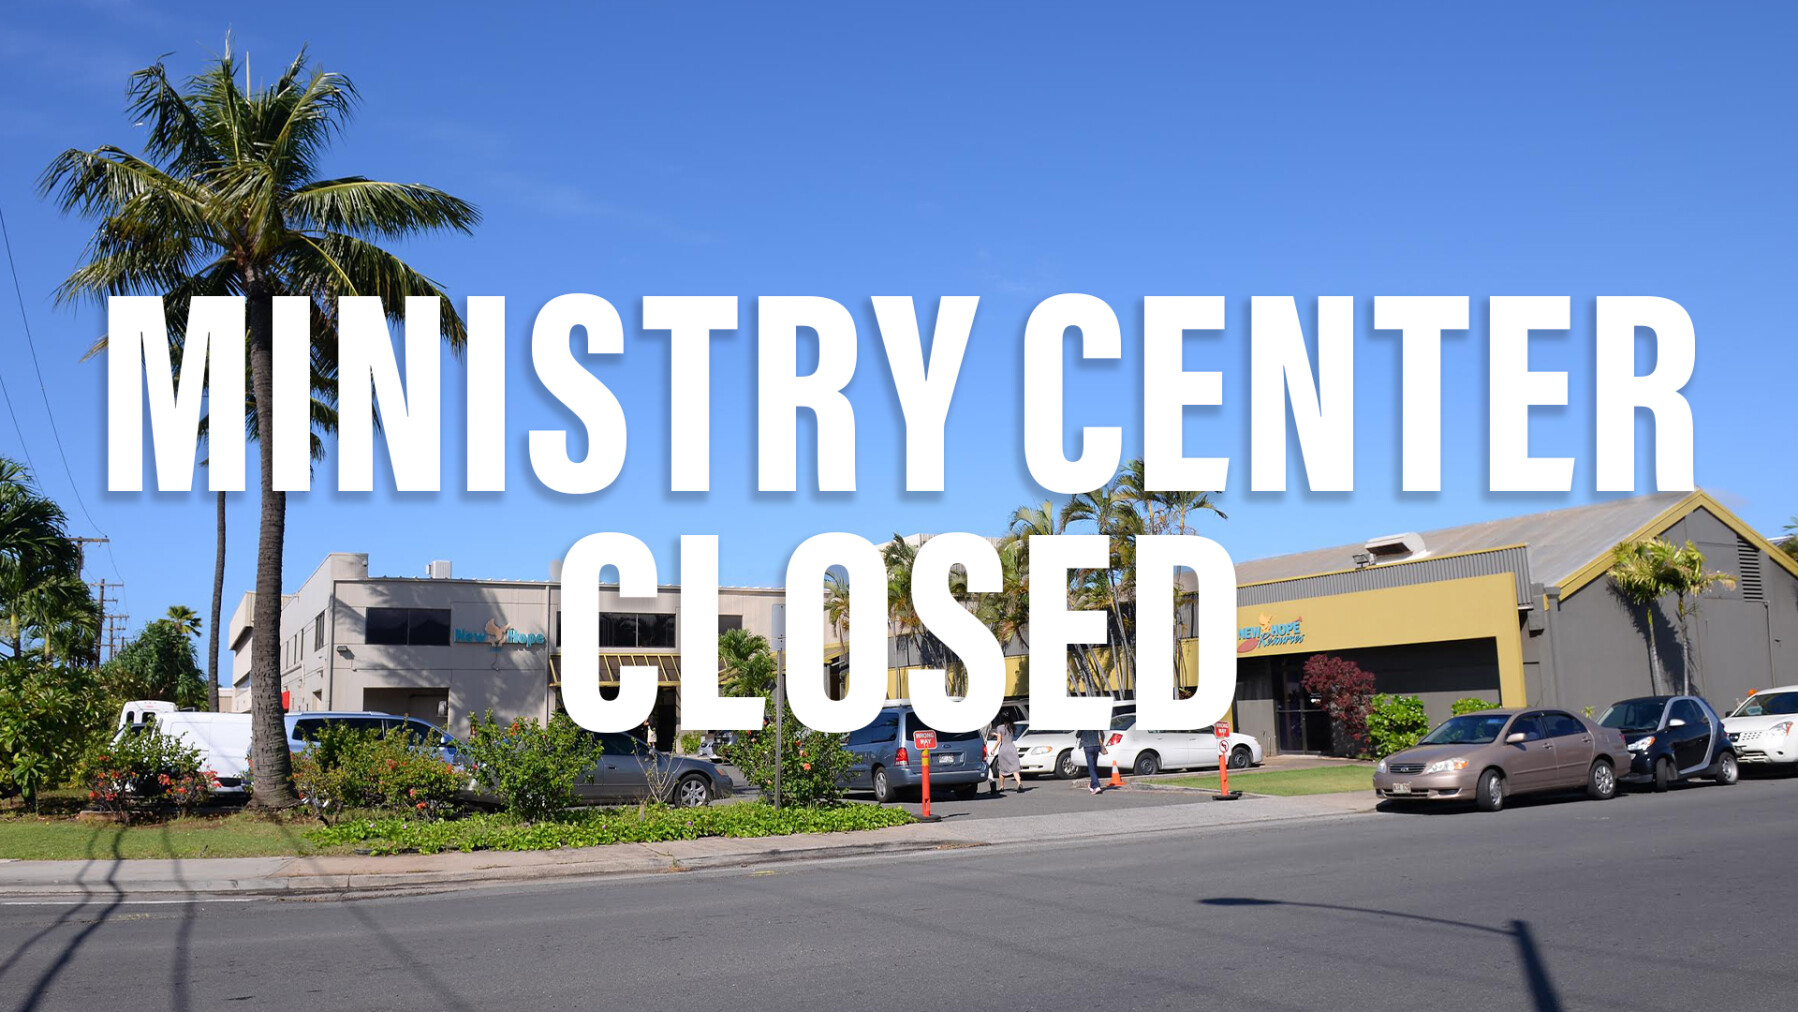 Ministry Center Closed